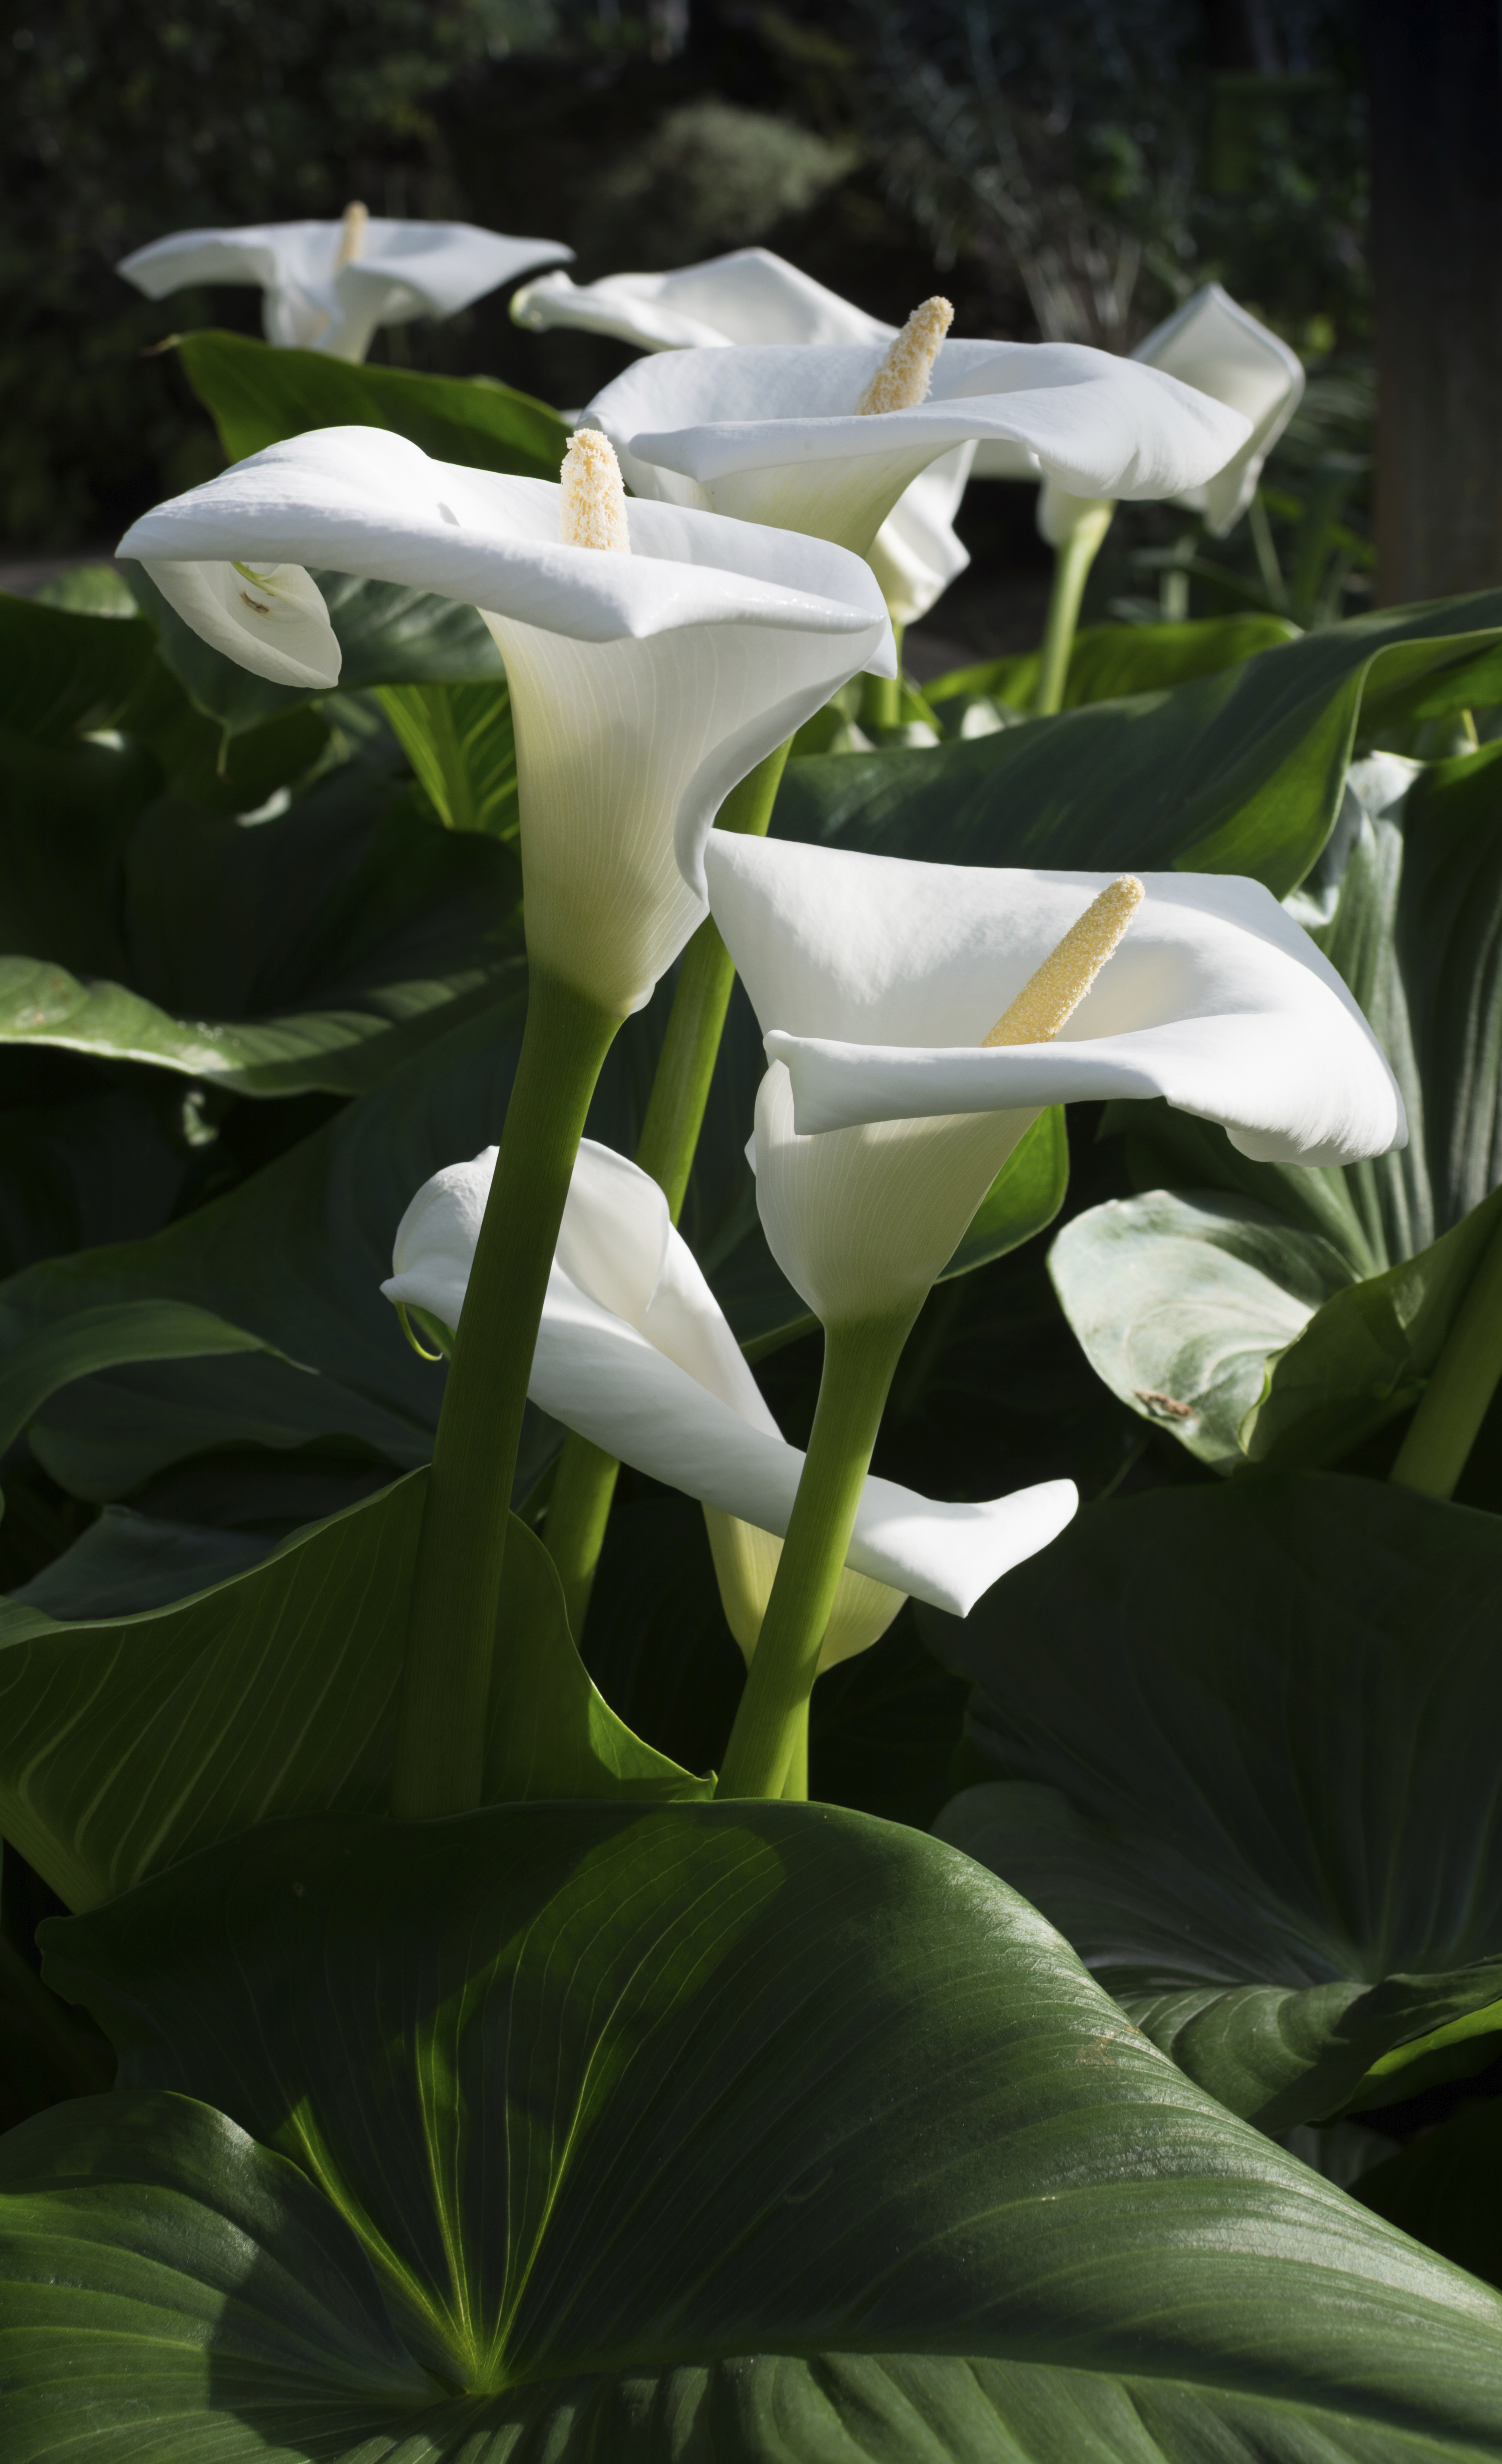 Grower direct fresh cut flowers presents your local flower shop white calla lilies vertical image group of white callas with green leaves white calla lily plant dhlflorist Choice Image